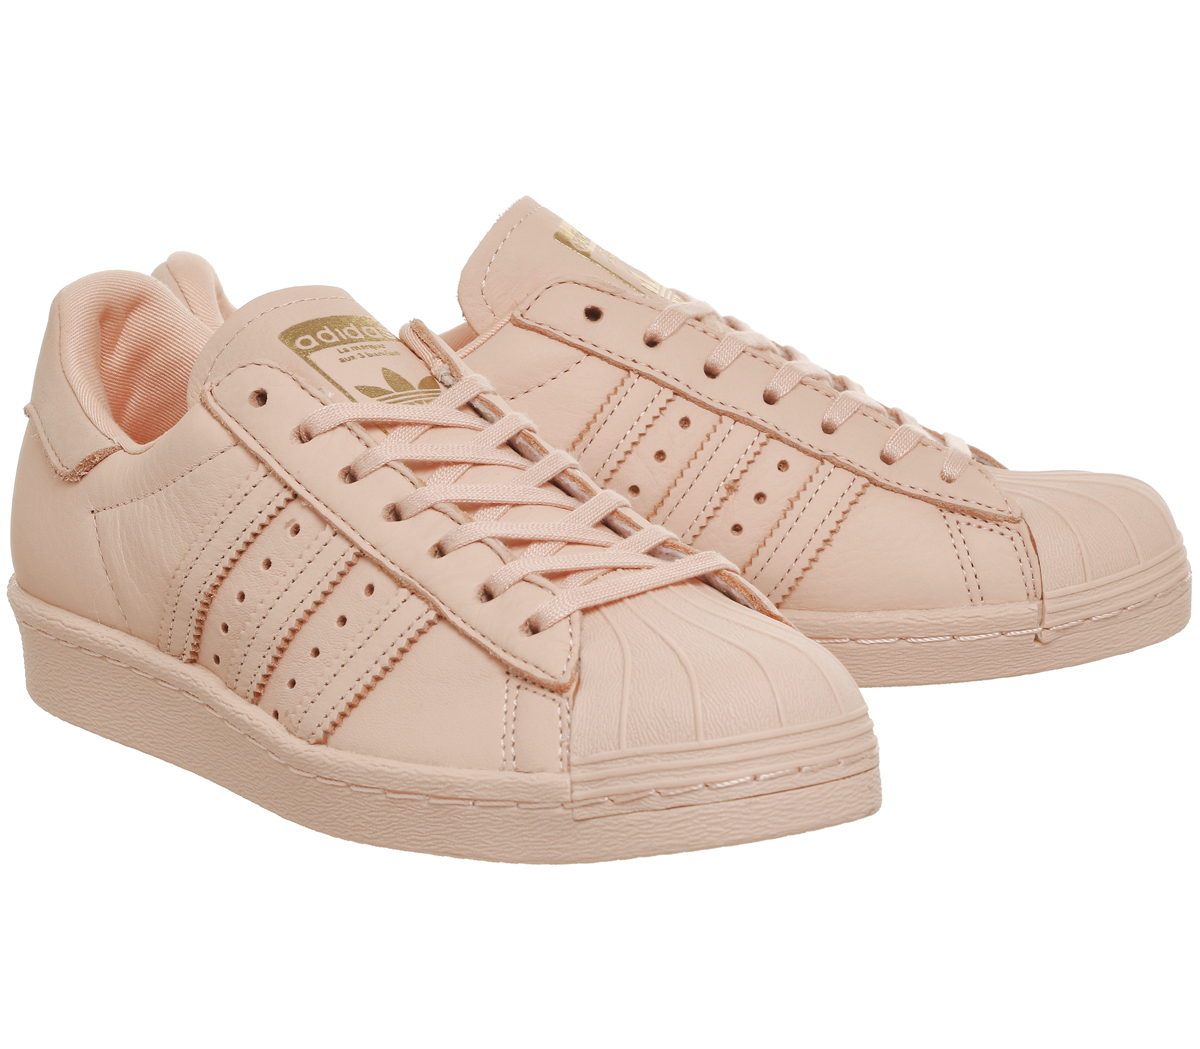 10980c5d7e31 ... discount code for sentinel womens adidas superstar 80s trainers vapour  pink trainers shoes 08cd6 63d4d